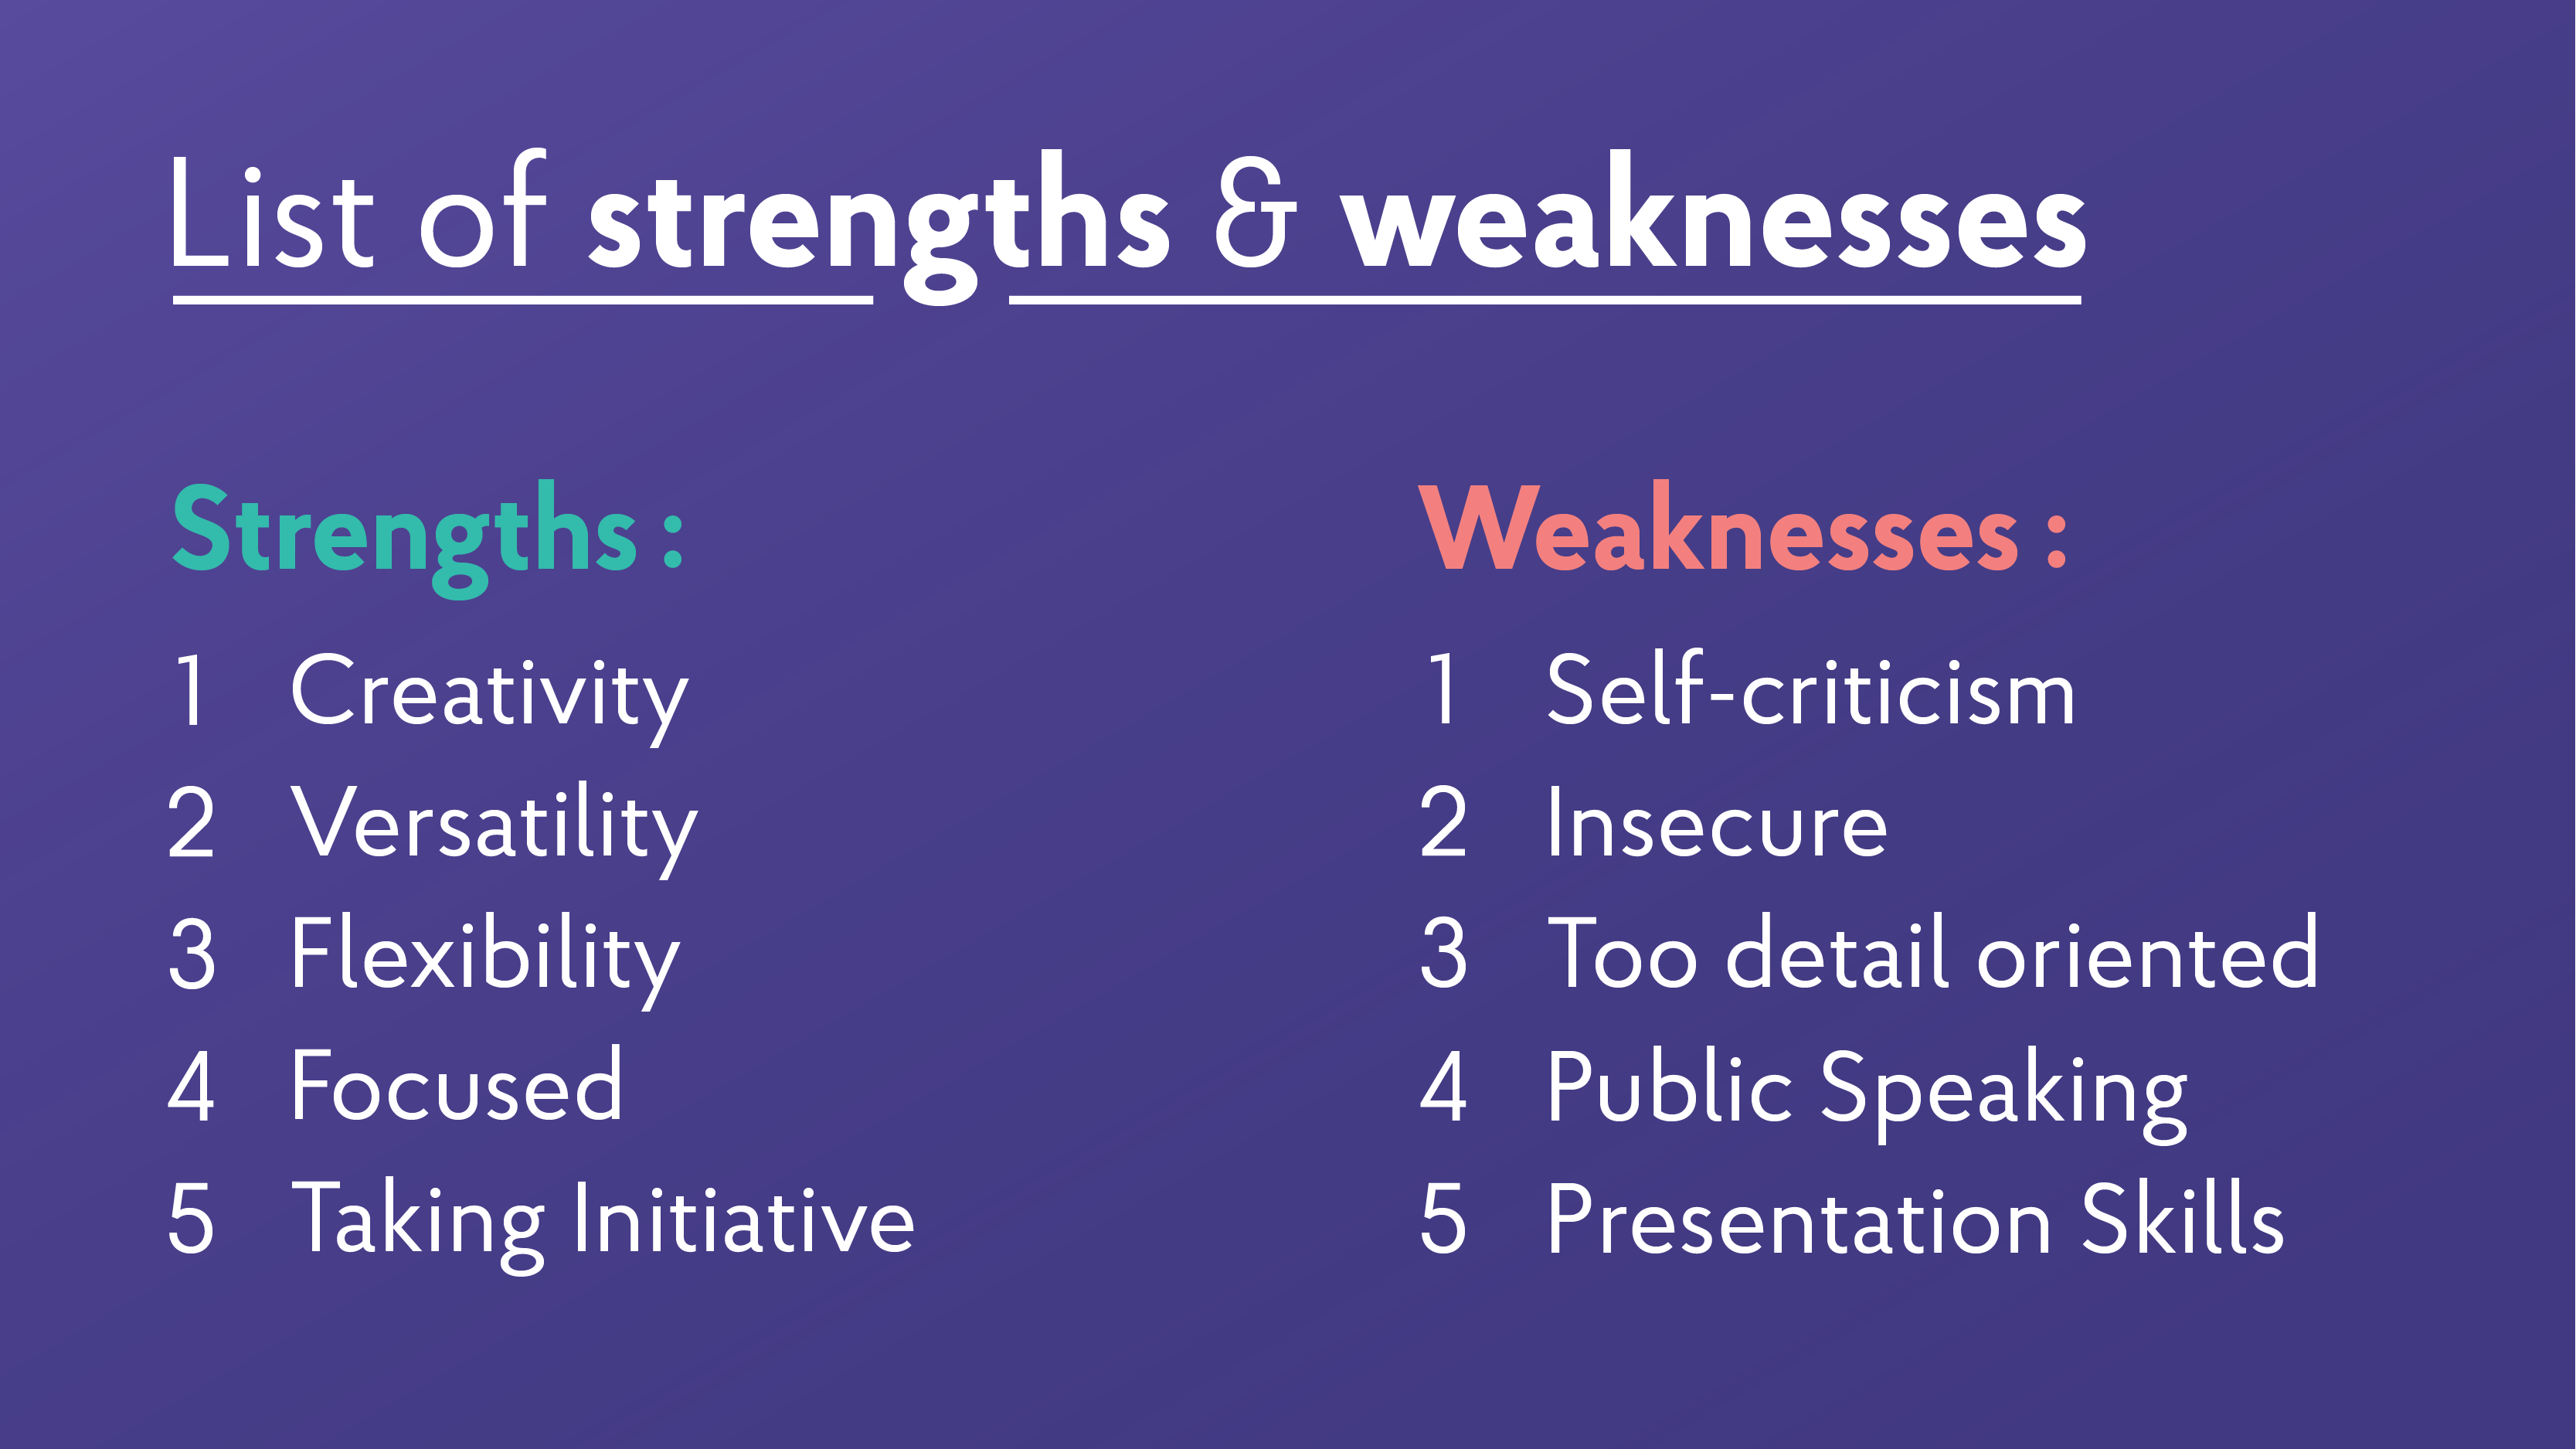 22 Strengths And Weaknesses For Job Interviews Best